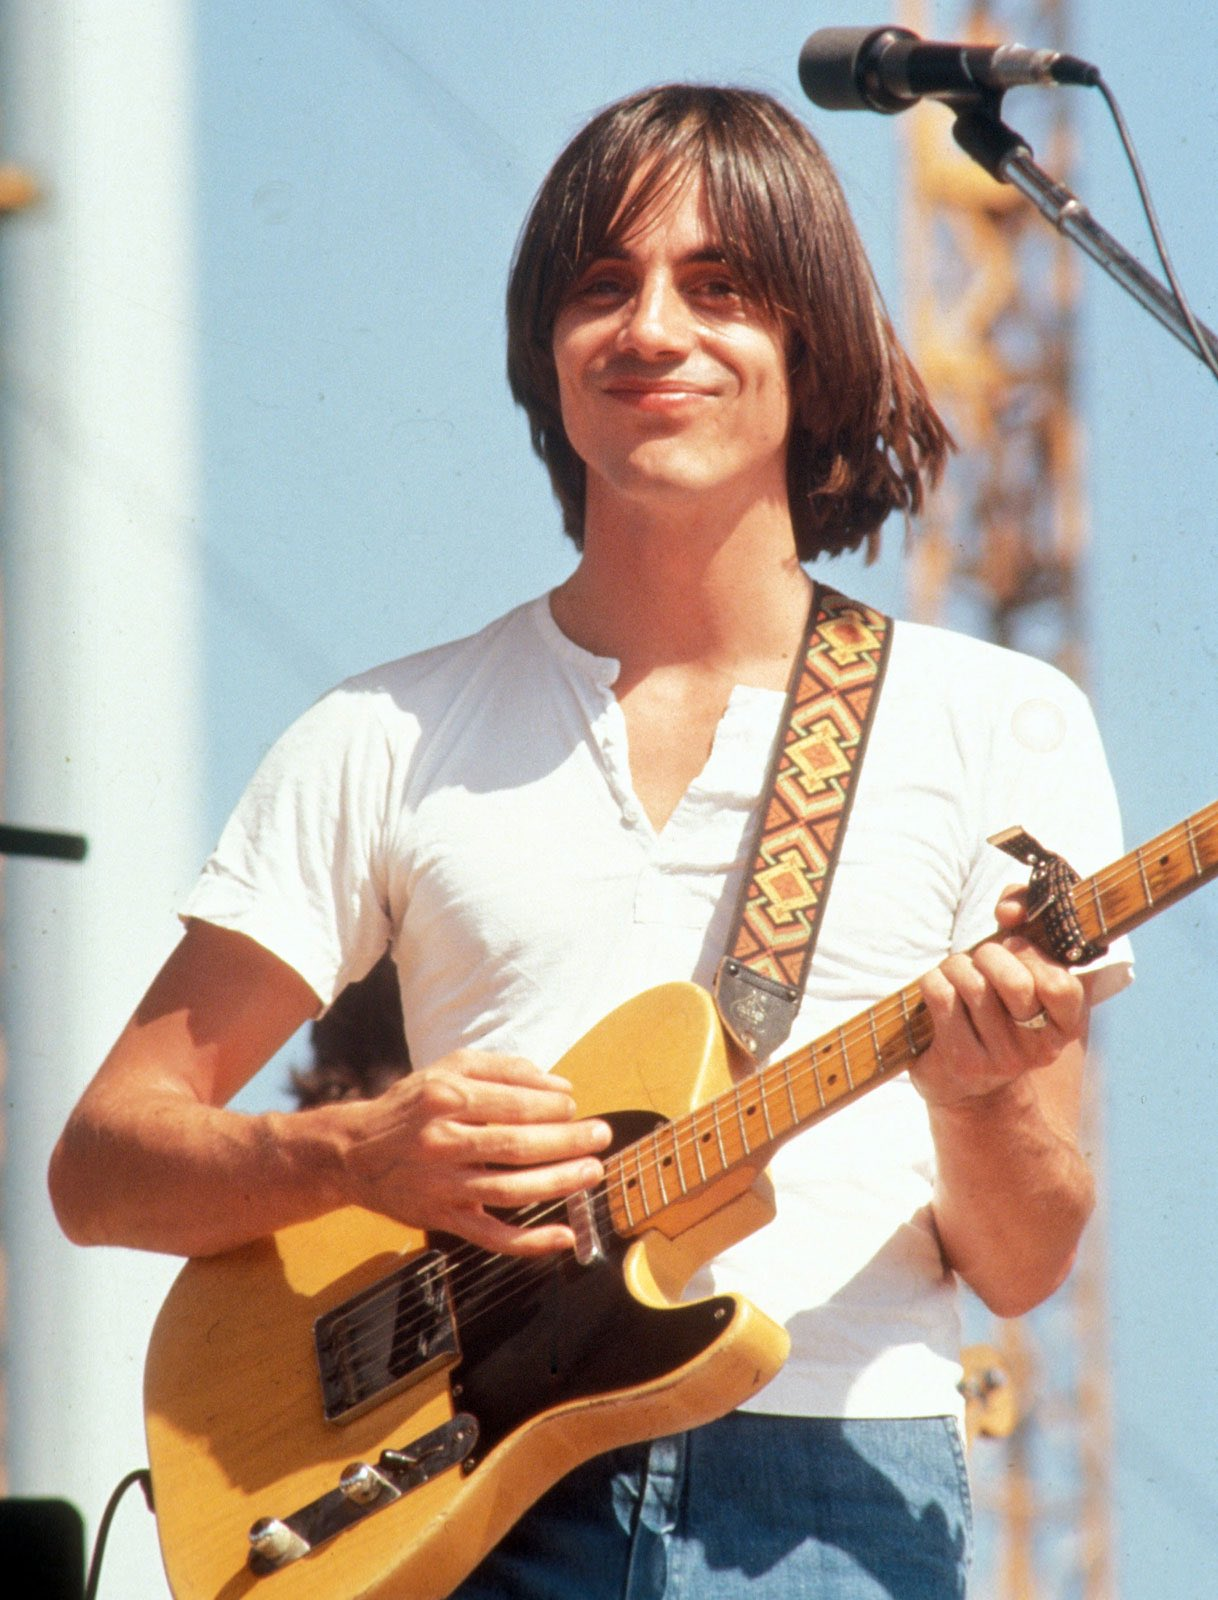 Happy Birthday to singer, songwriter and musician Jackson Browne born on October 9, 1948